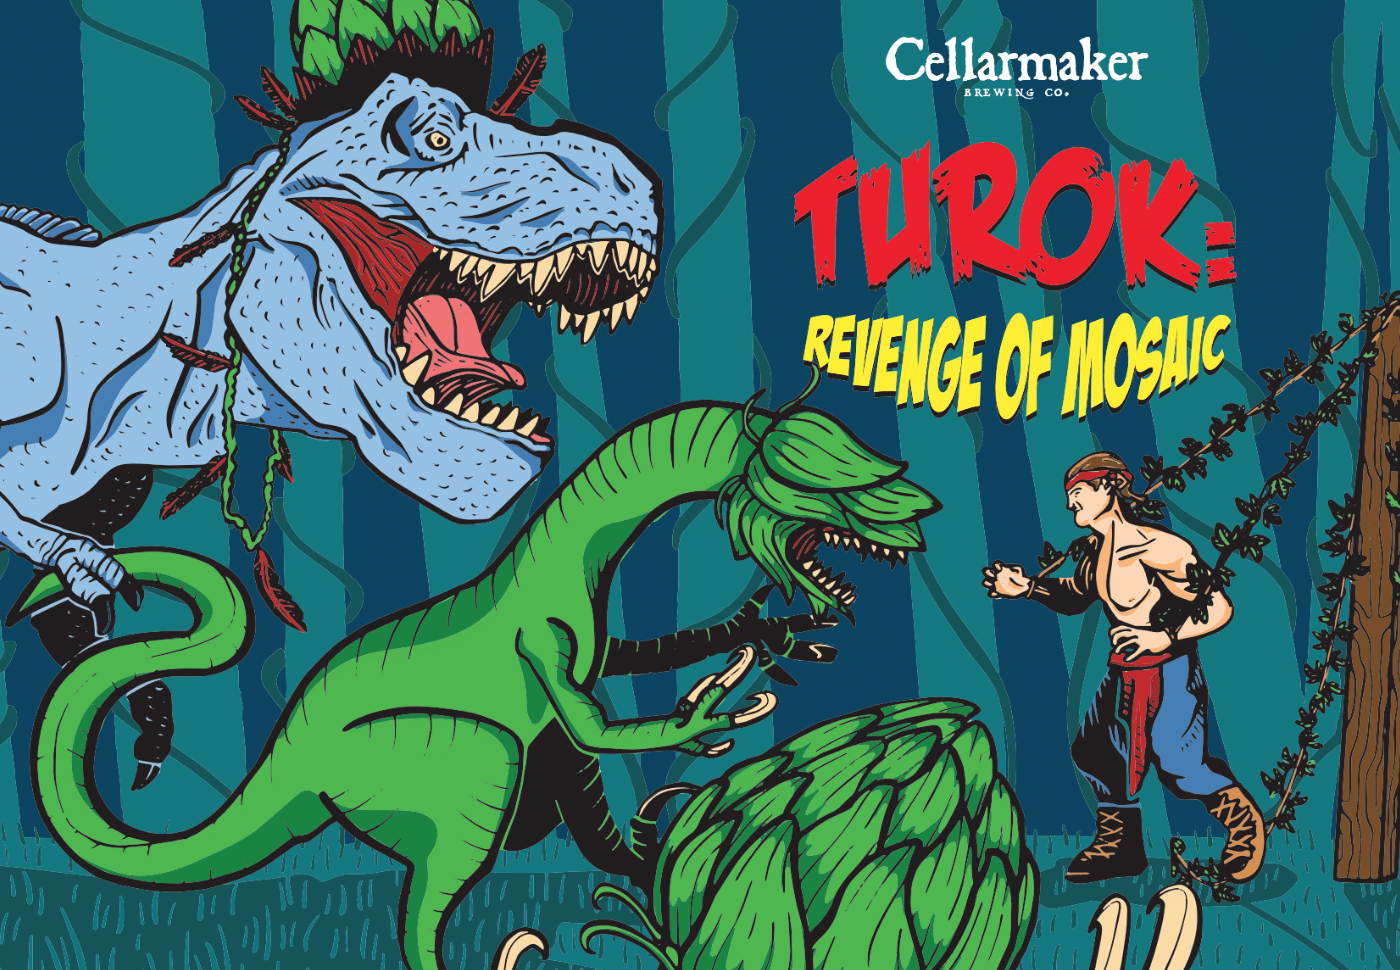 """Turok: Revenge Of Mosaic"" & ""Mt. Nelson"" Cans ~ Sold Out"